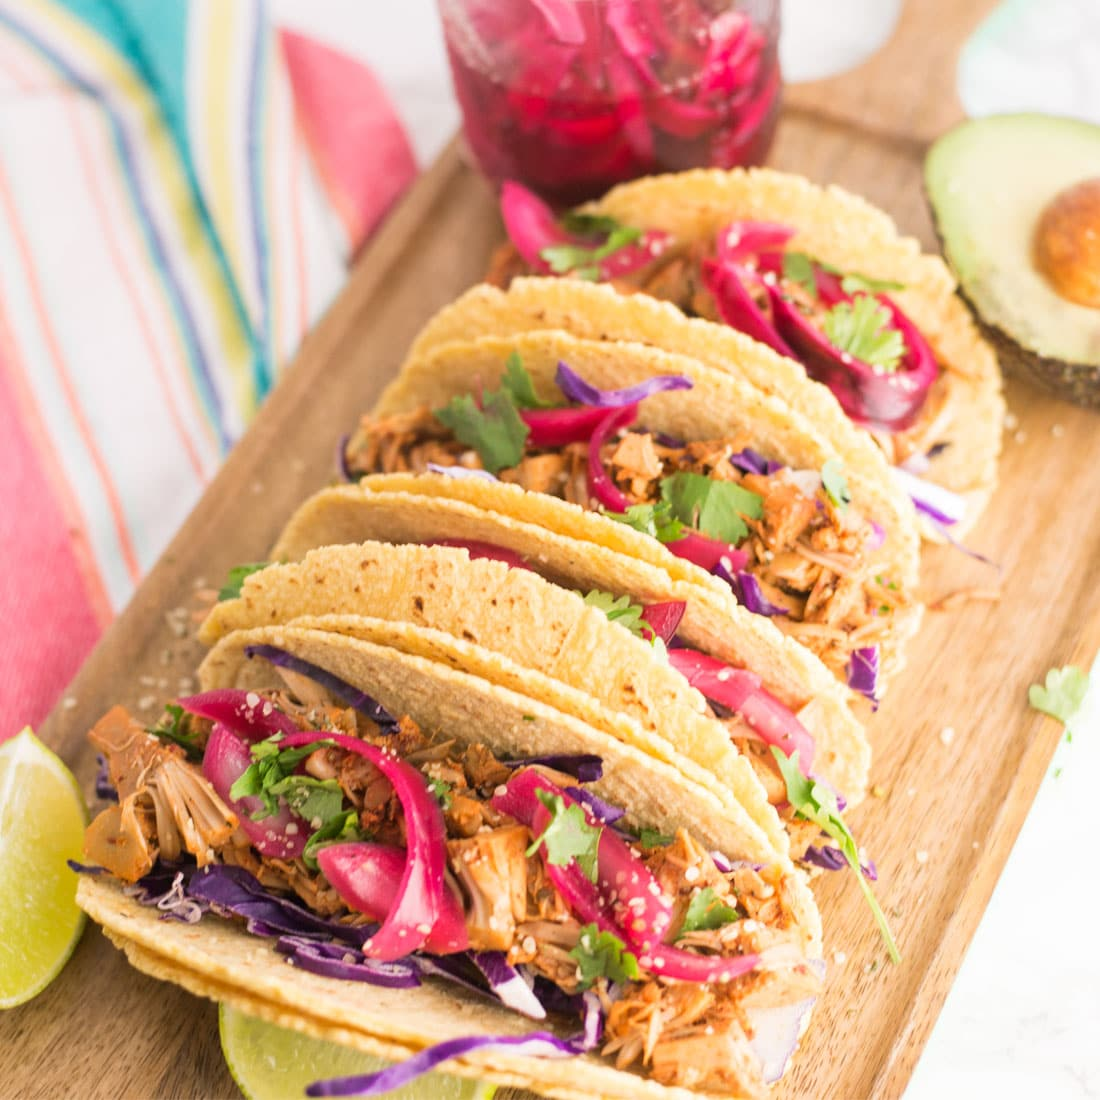 vegan jackfruit pulled pork tacos on wood board with avocado, limes, and pickled red onions